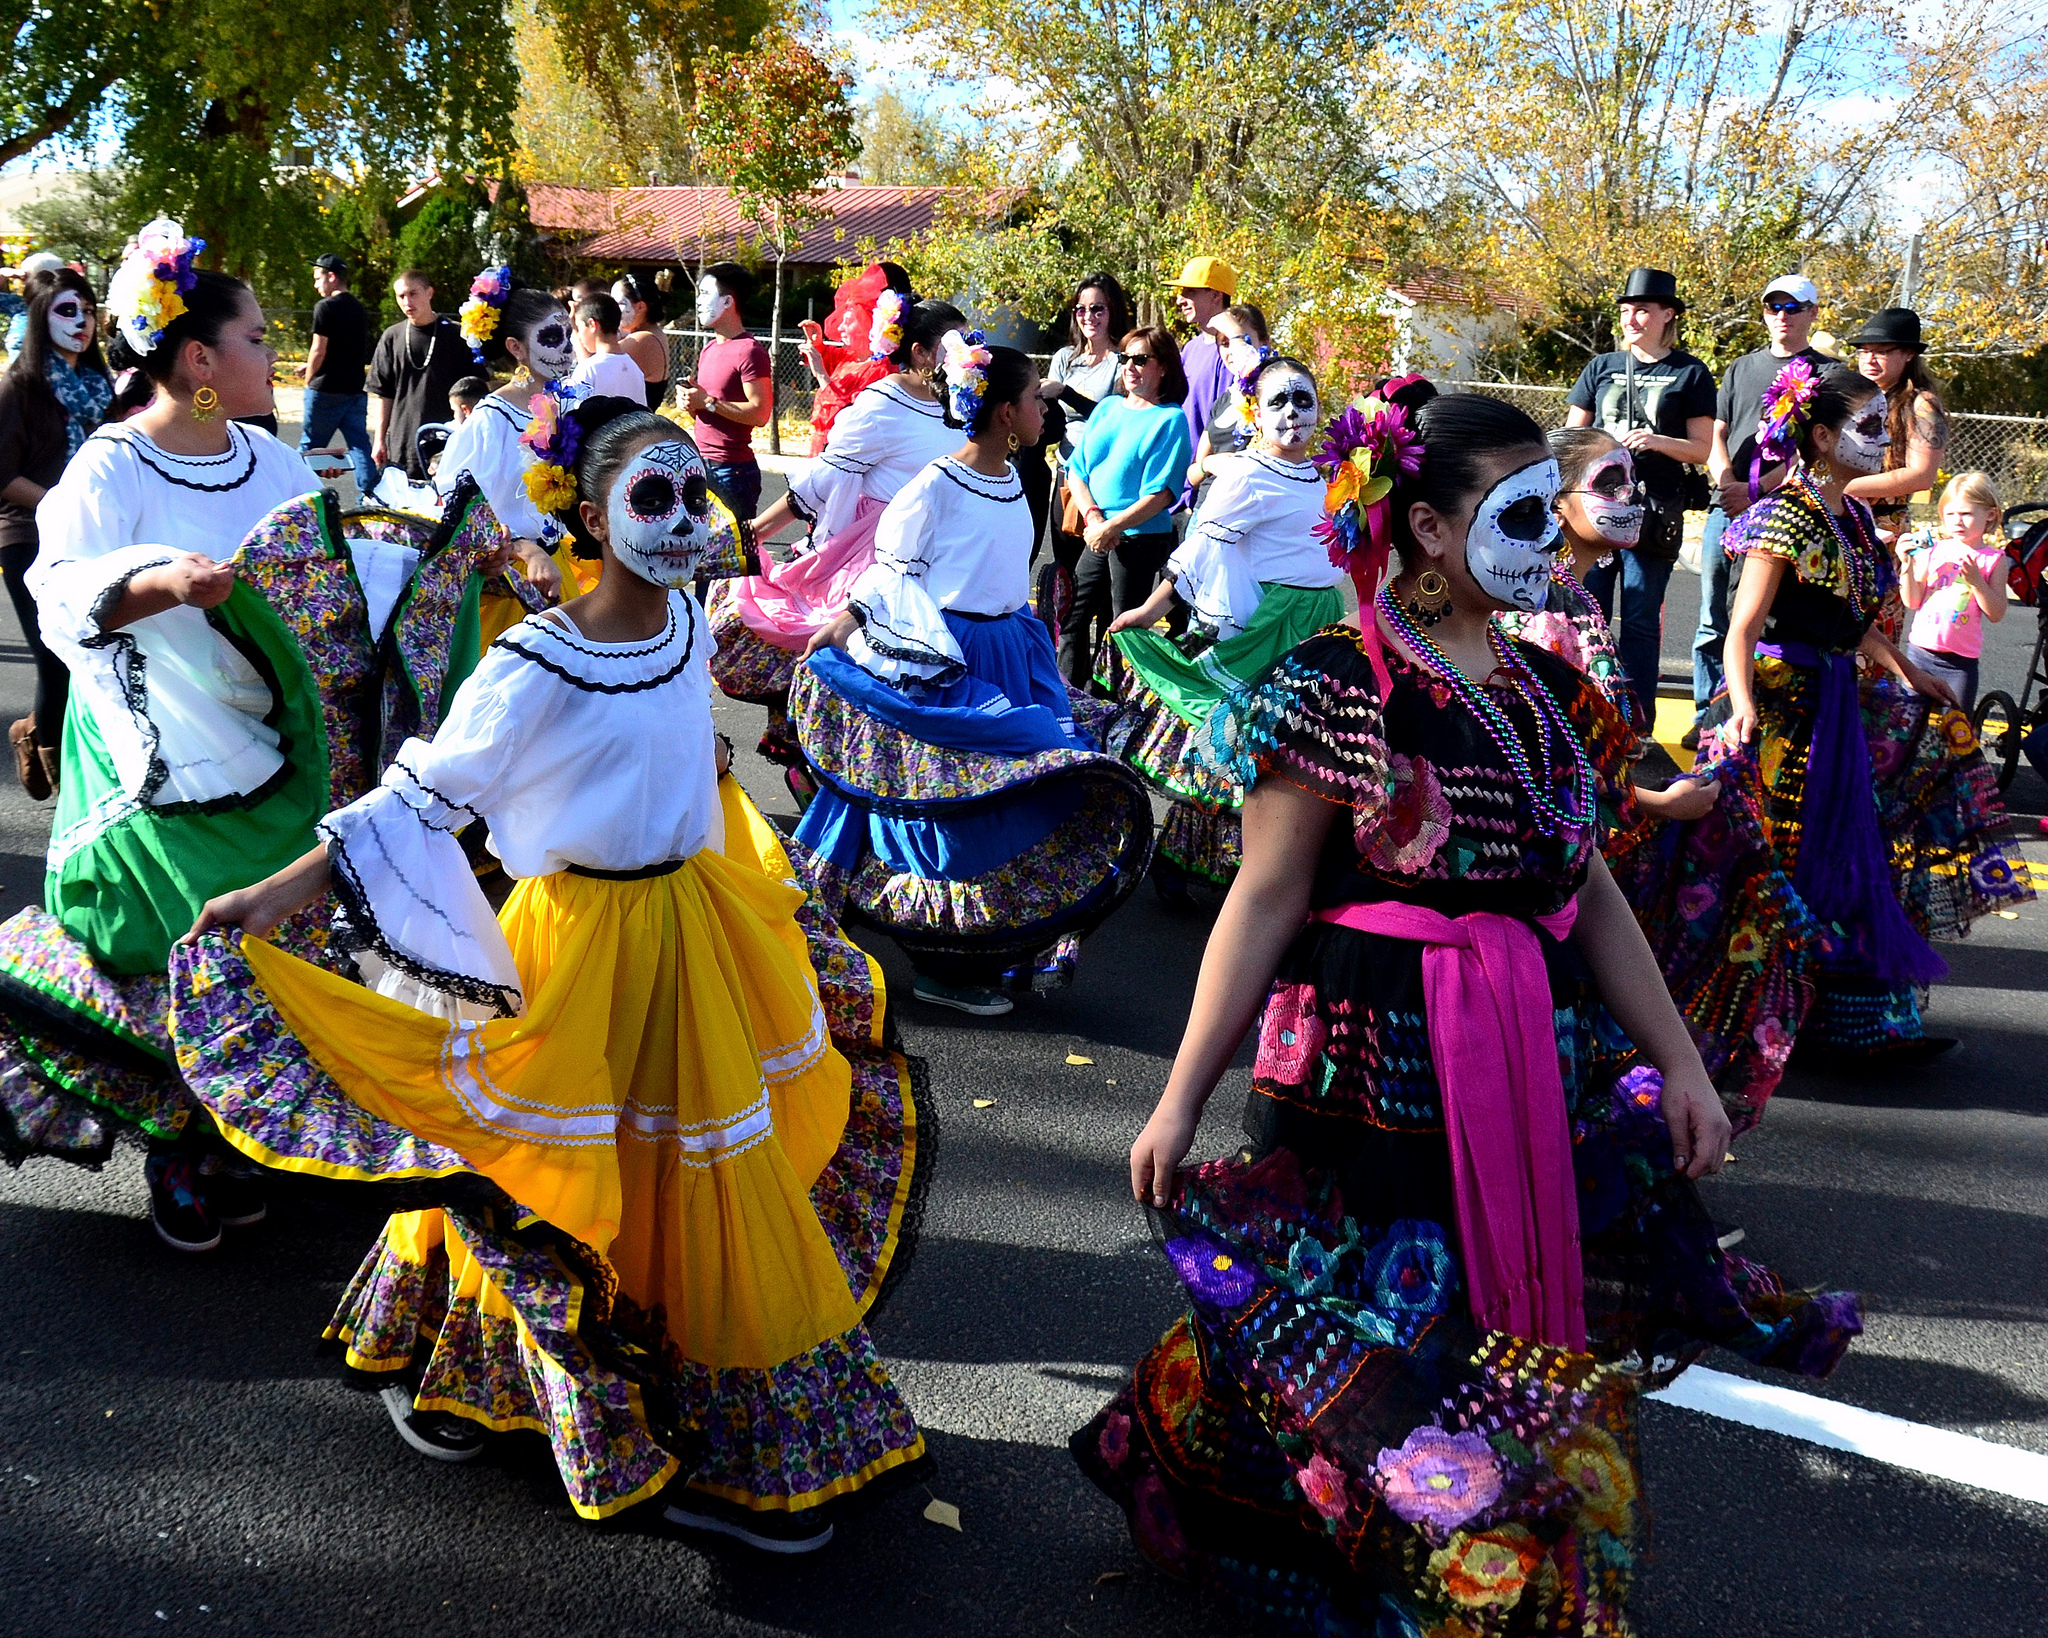 an essay on the celebration of los dias de los muertos in mexico Courtesy of the smithsonian national museum of american dia de los muertos: a community celebration a clear essay explaining why the dia de los muertos.